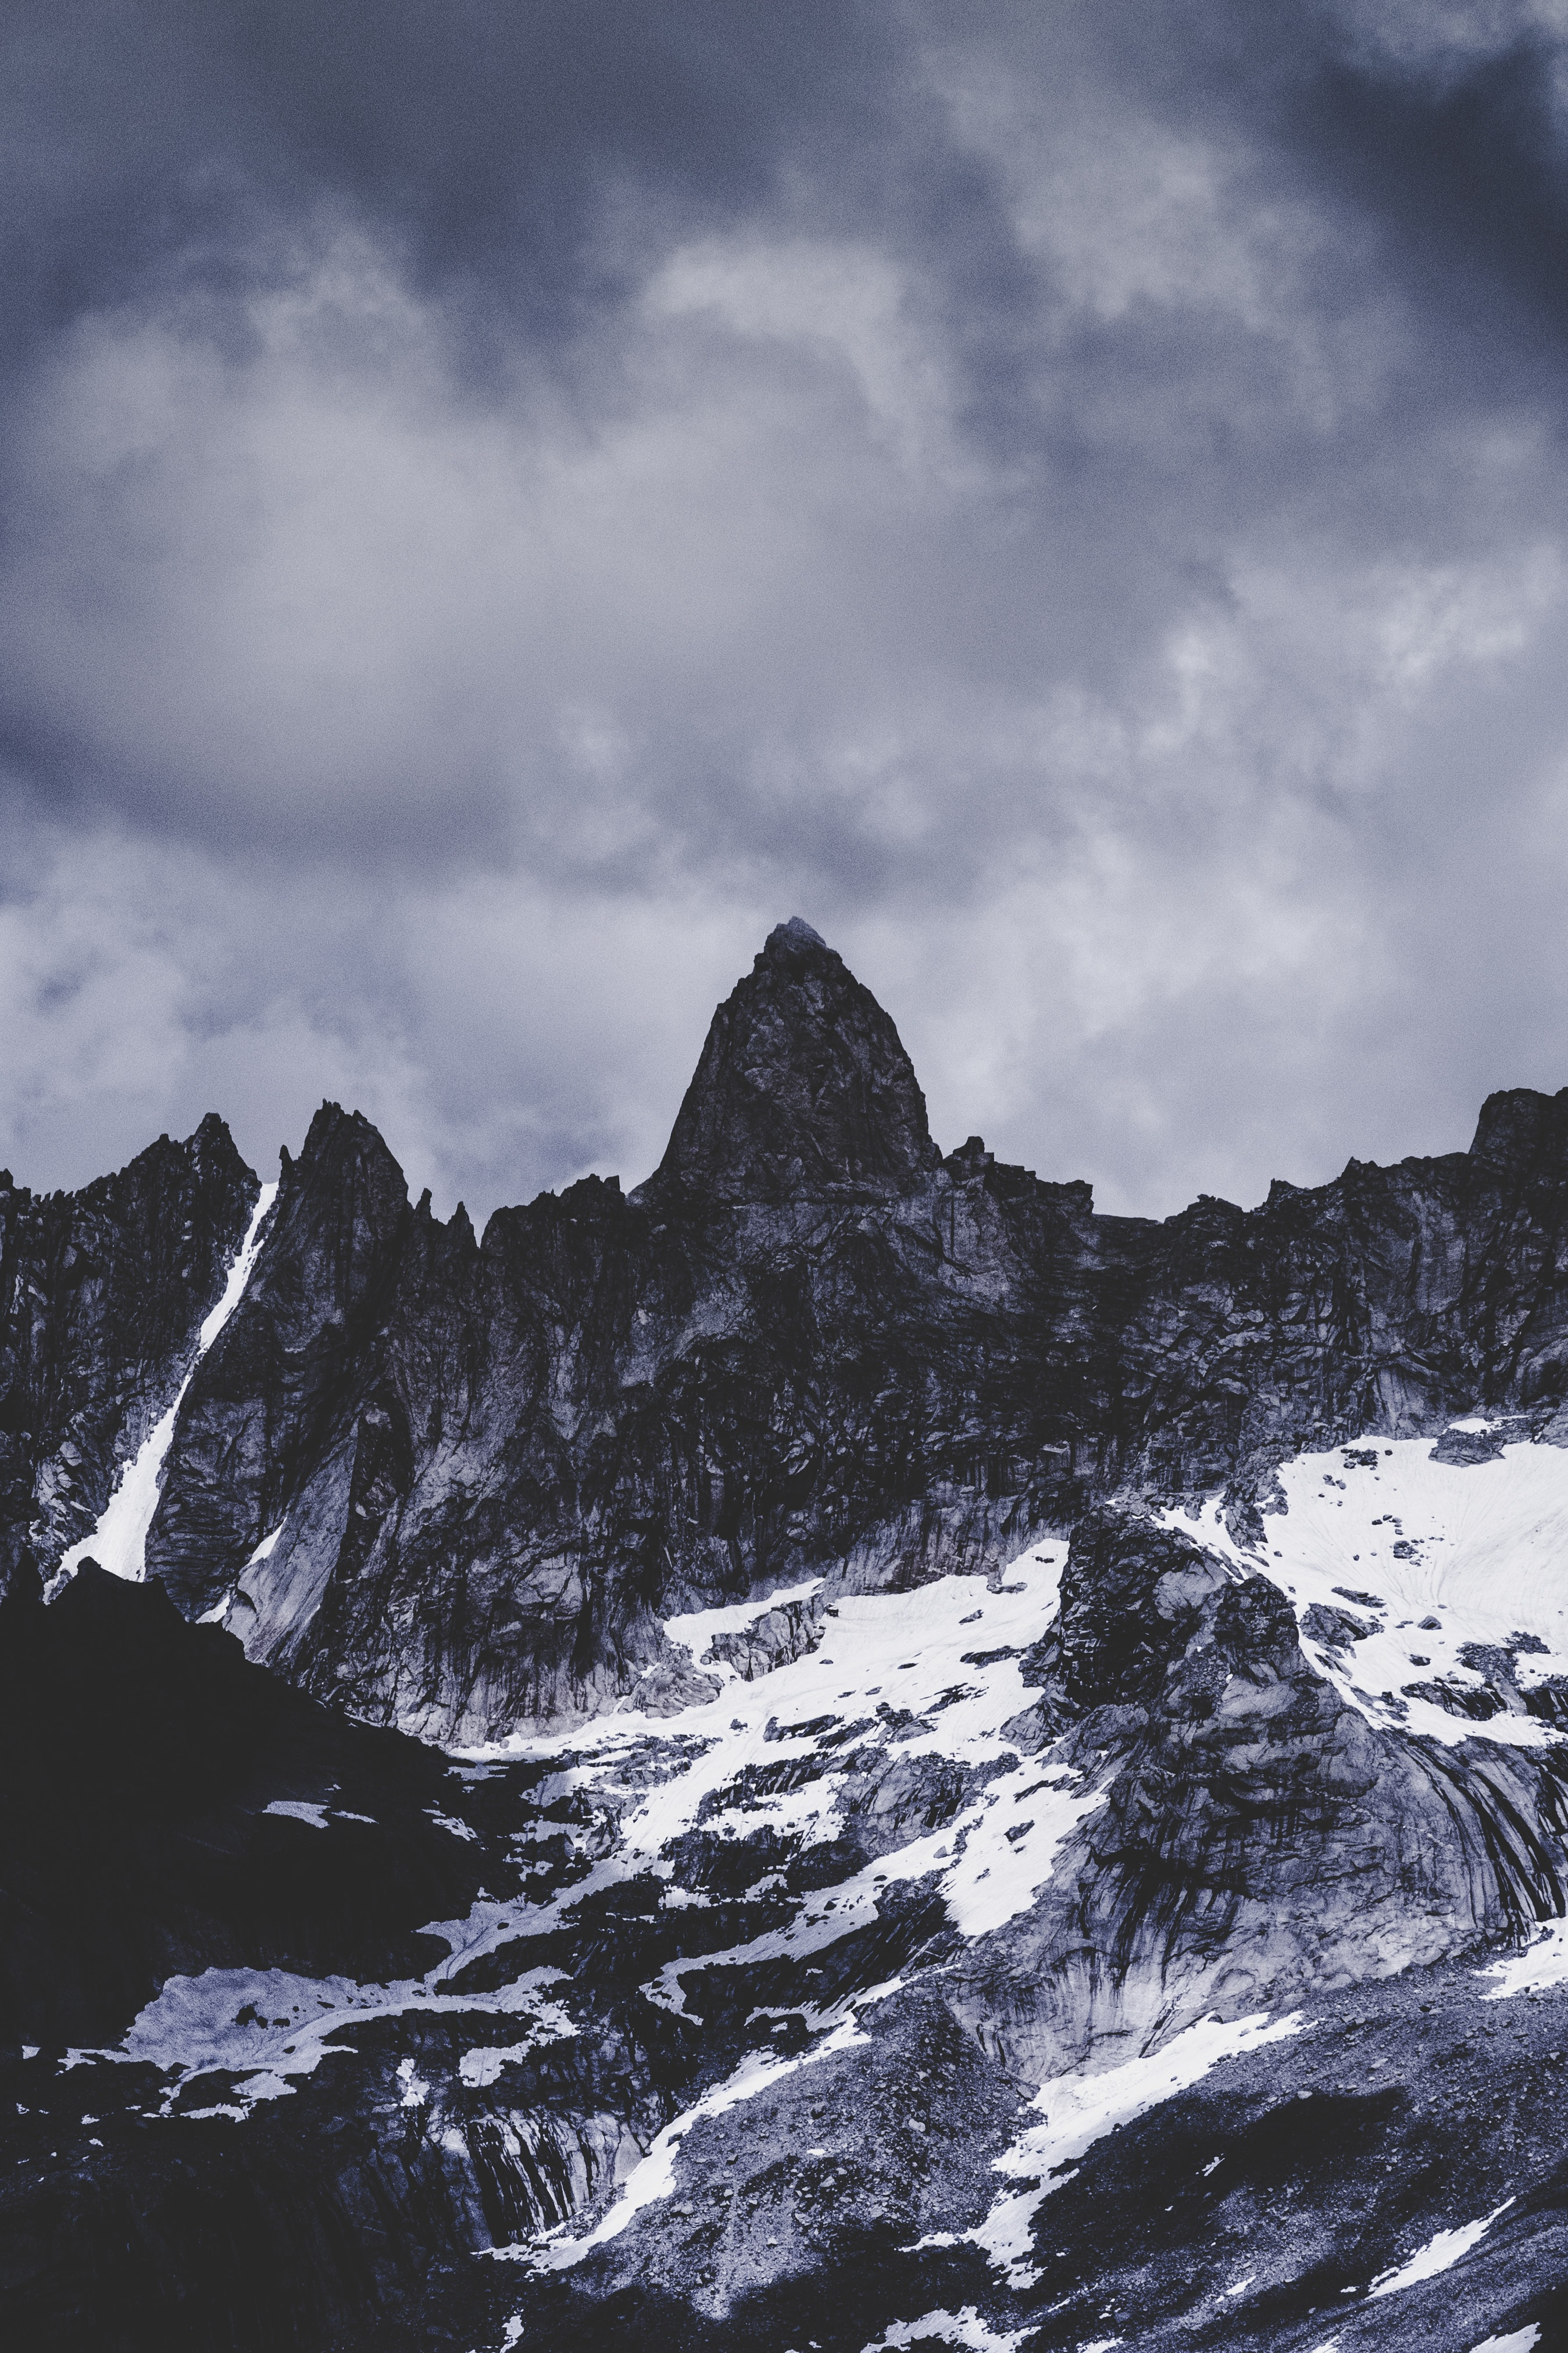 grayscale landscape photography of mountain under alto cumulus clouds